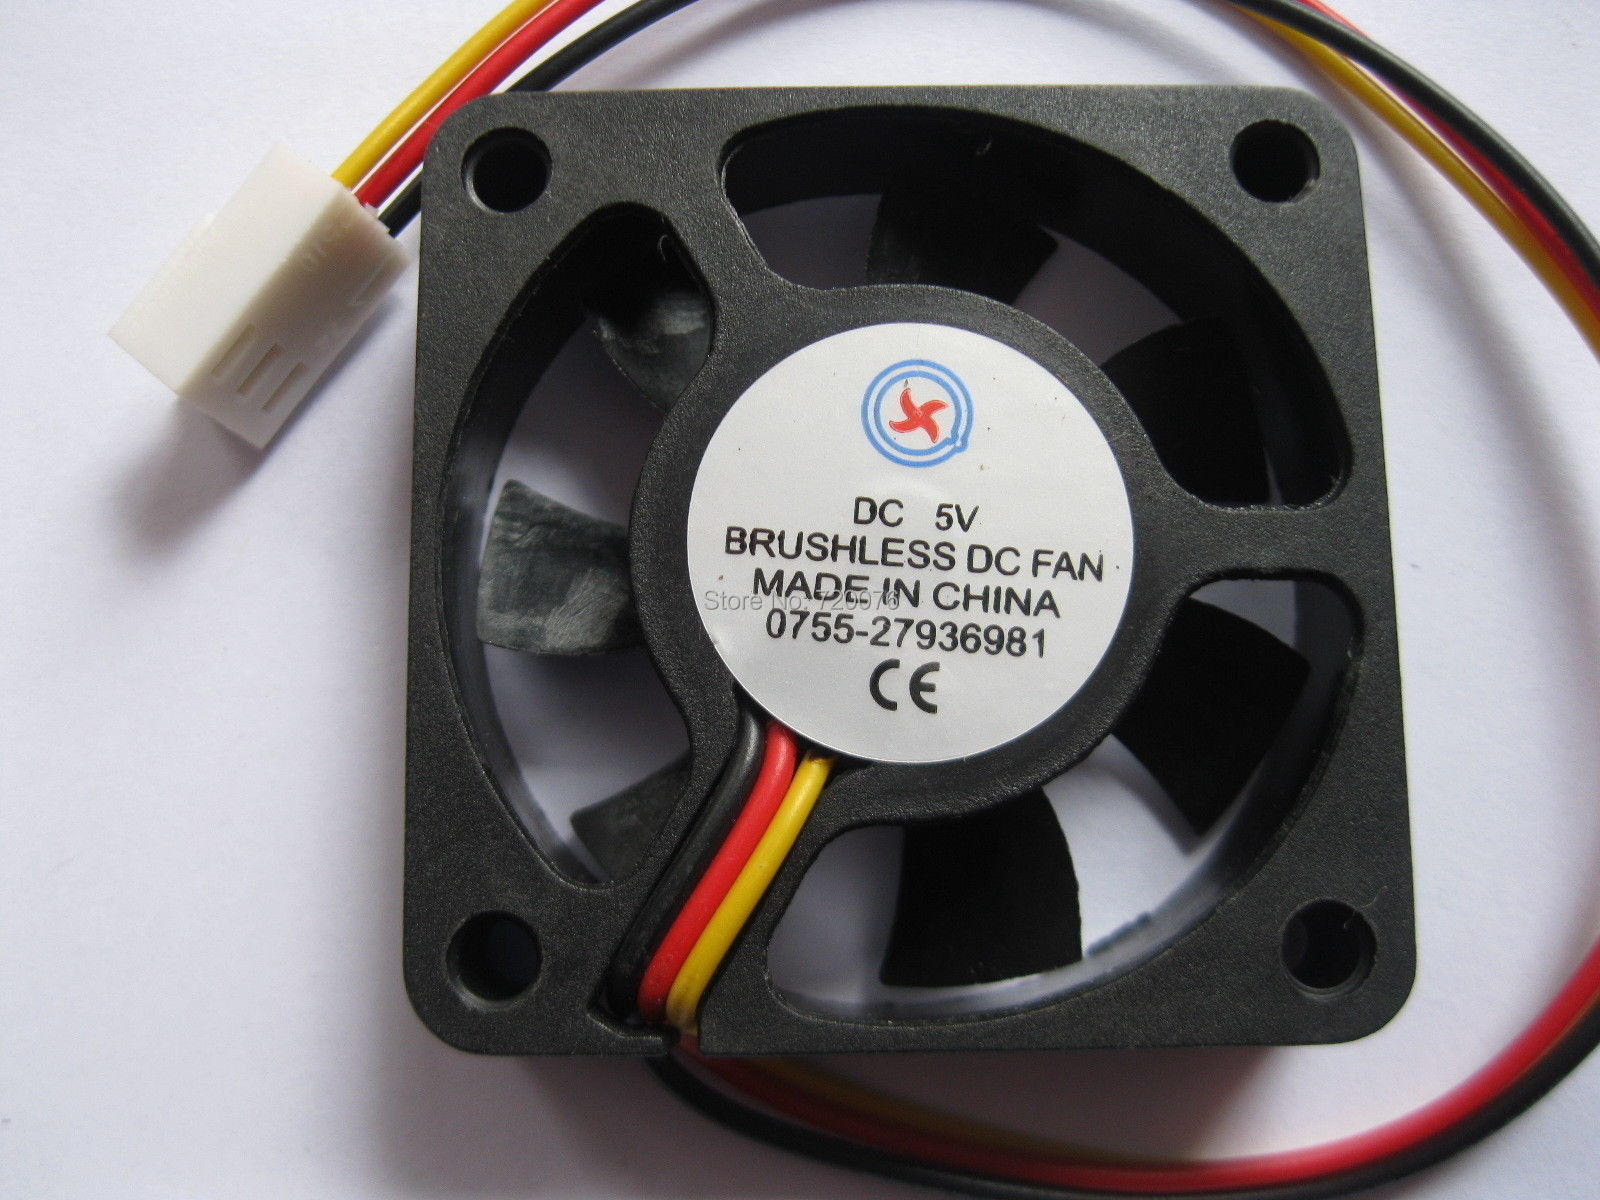 1pc 45x45x10mm 45mm 4510 7 blades 24V 2pin Connector Brushless DC Cooling Fan